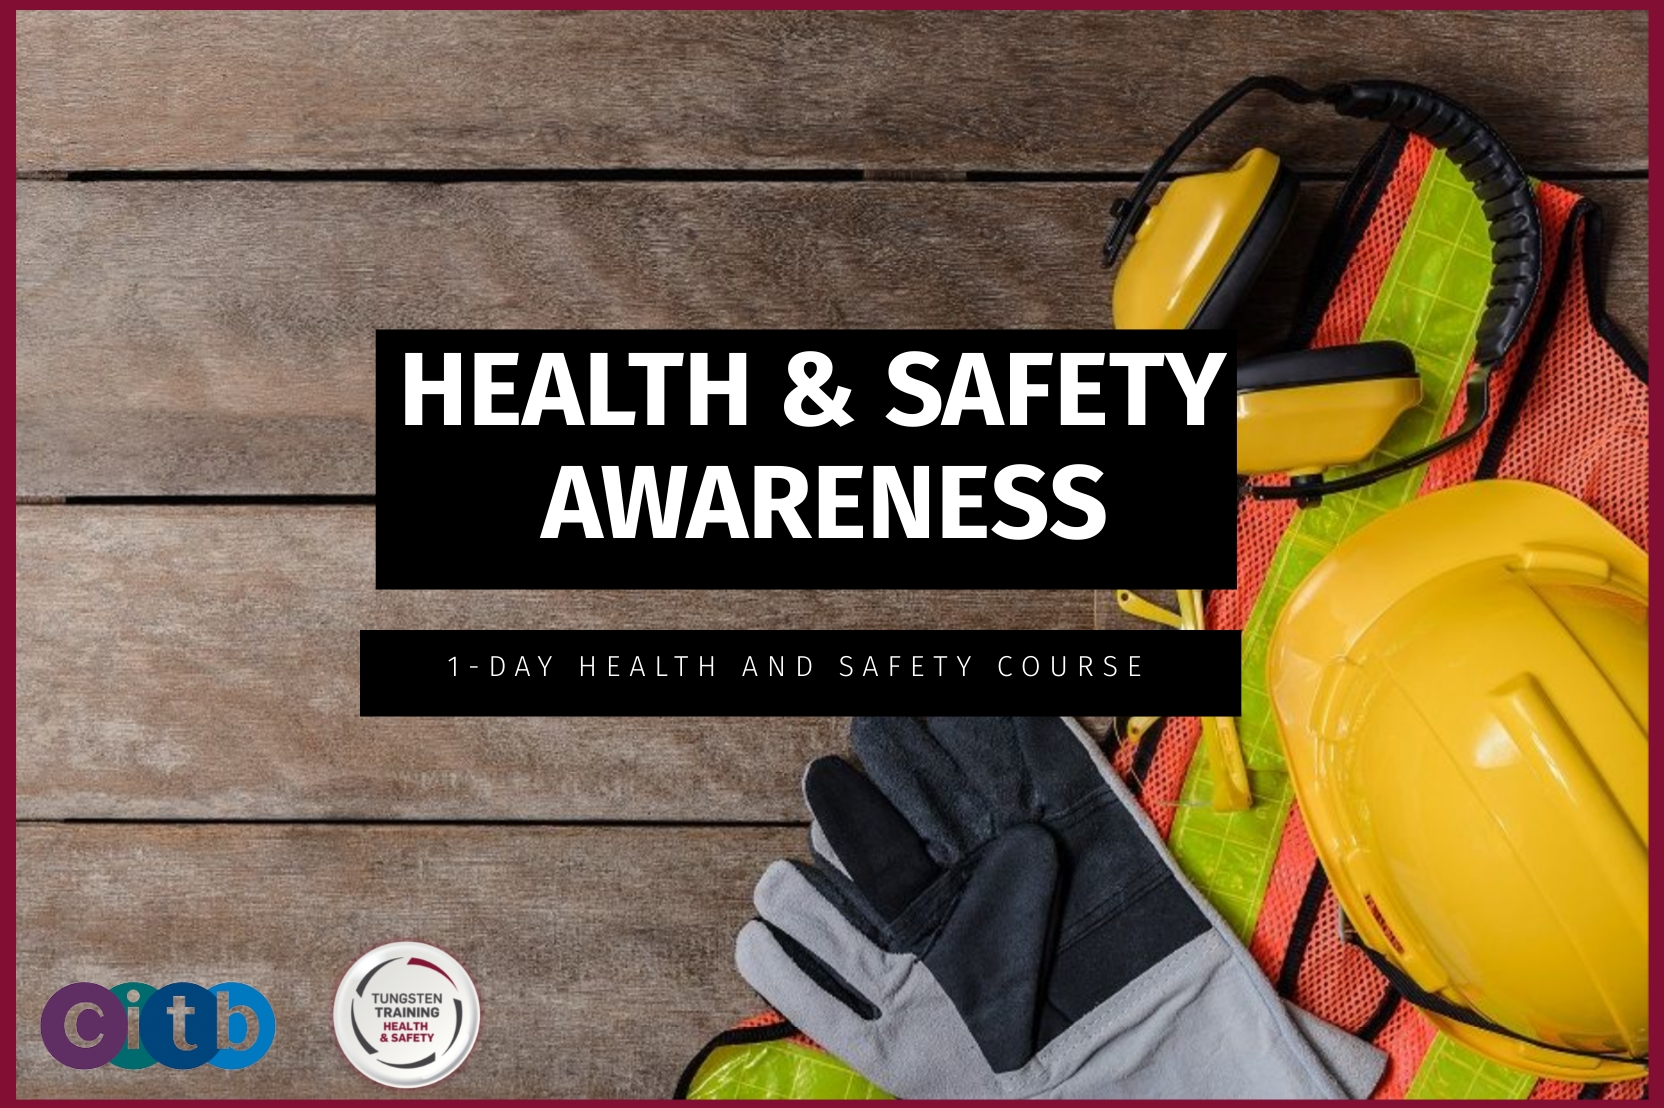 HEALTH-AND-SAFETY-AWARENESS.jpg